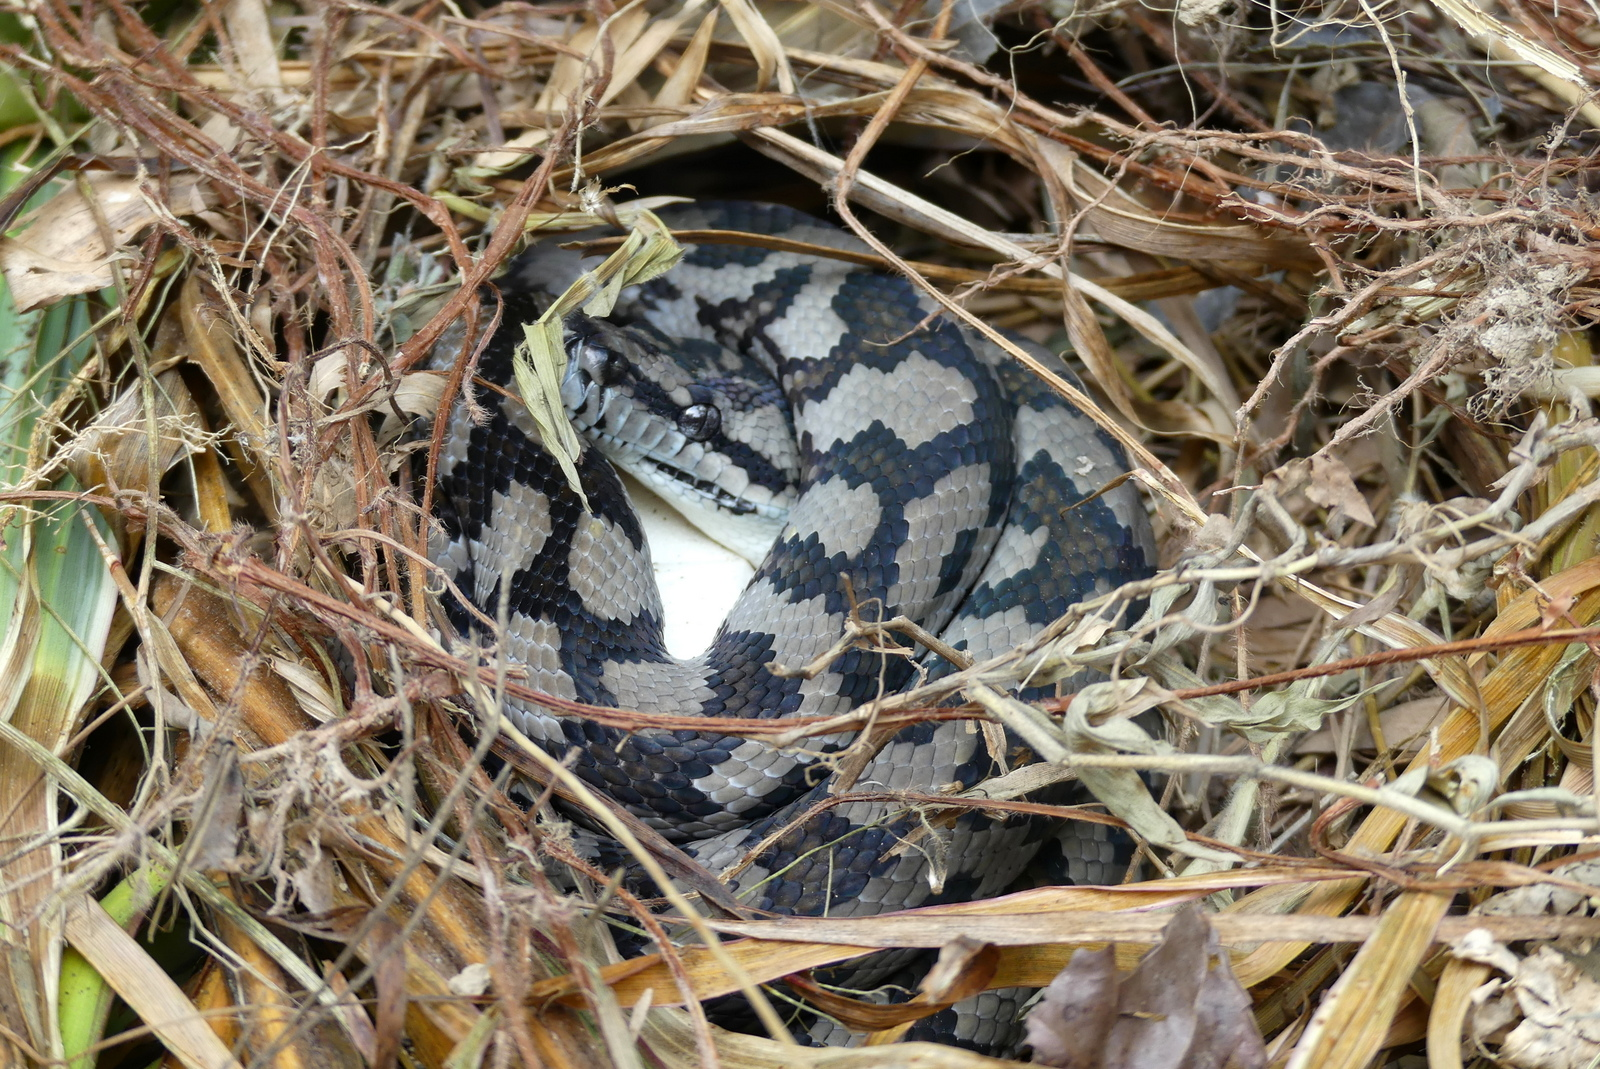 1-Carpet snake with eggs